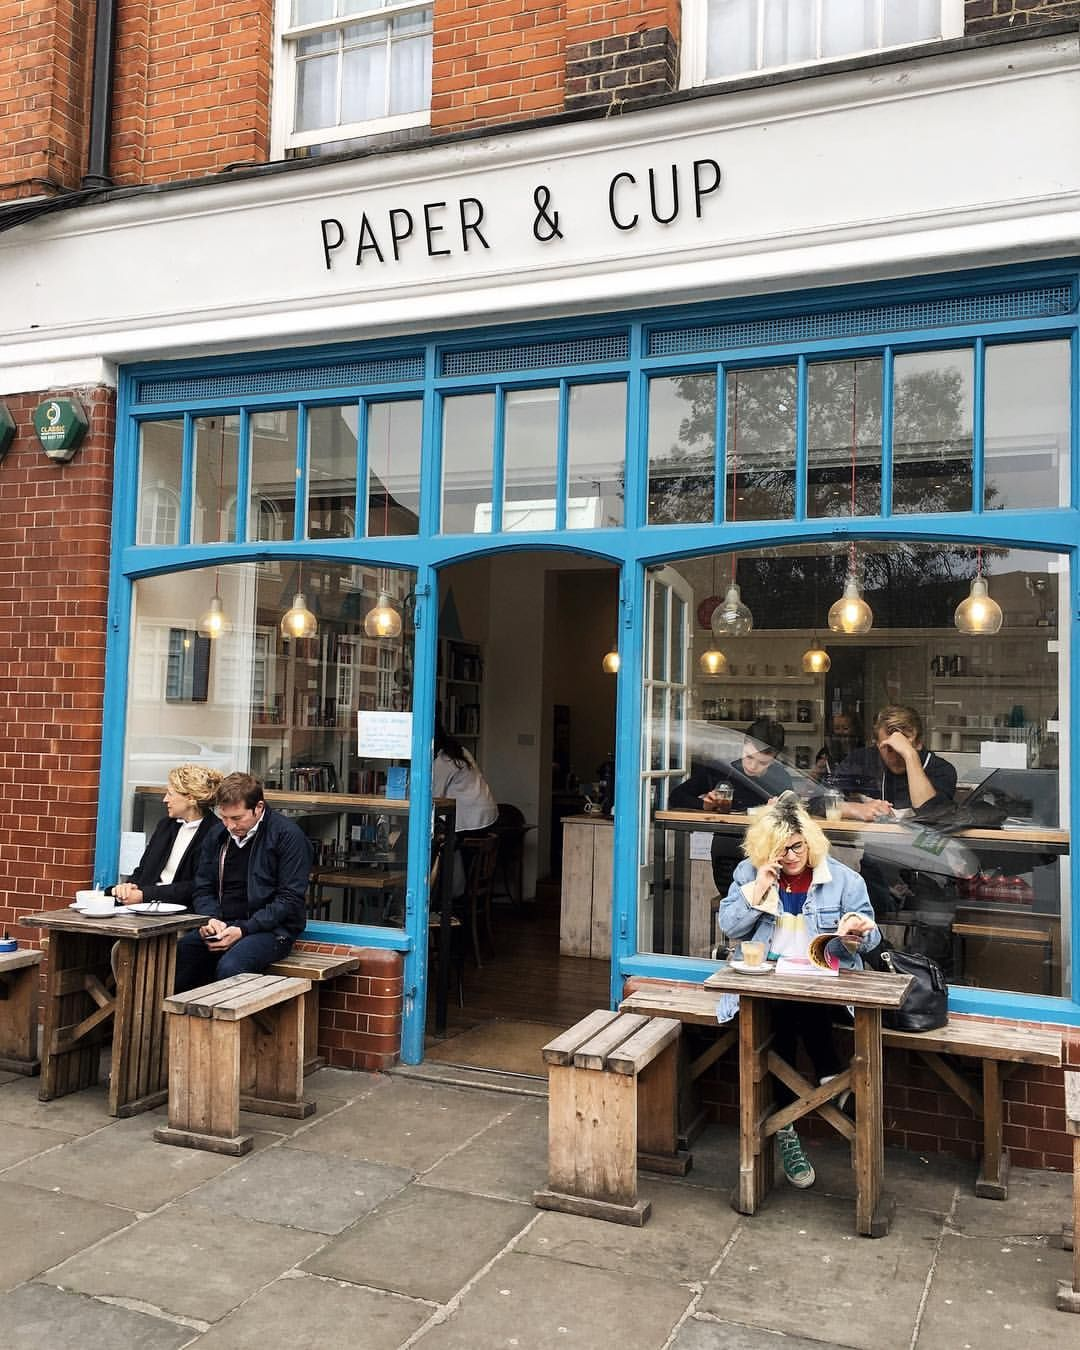 Shoreditch England: Paper & Cup, Shoreditch (With Images)